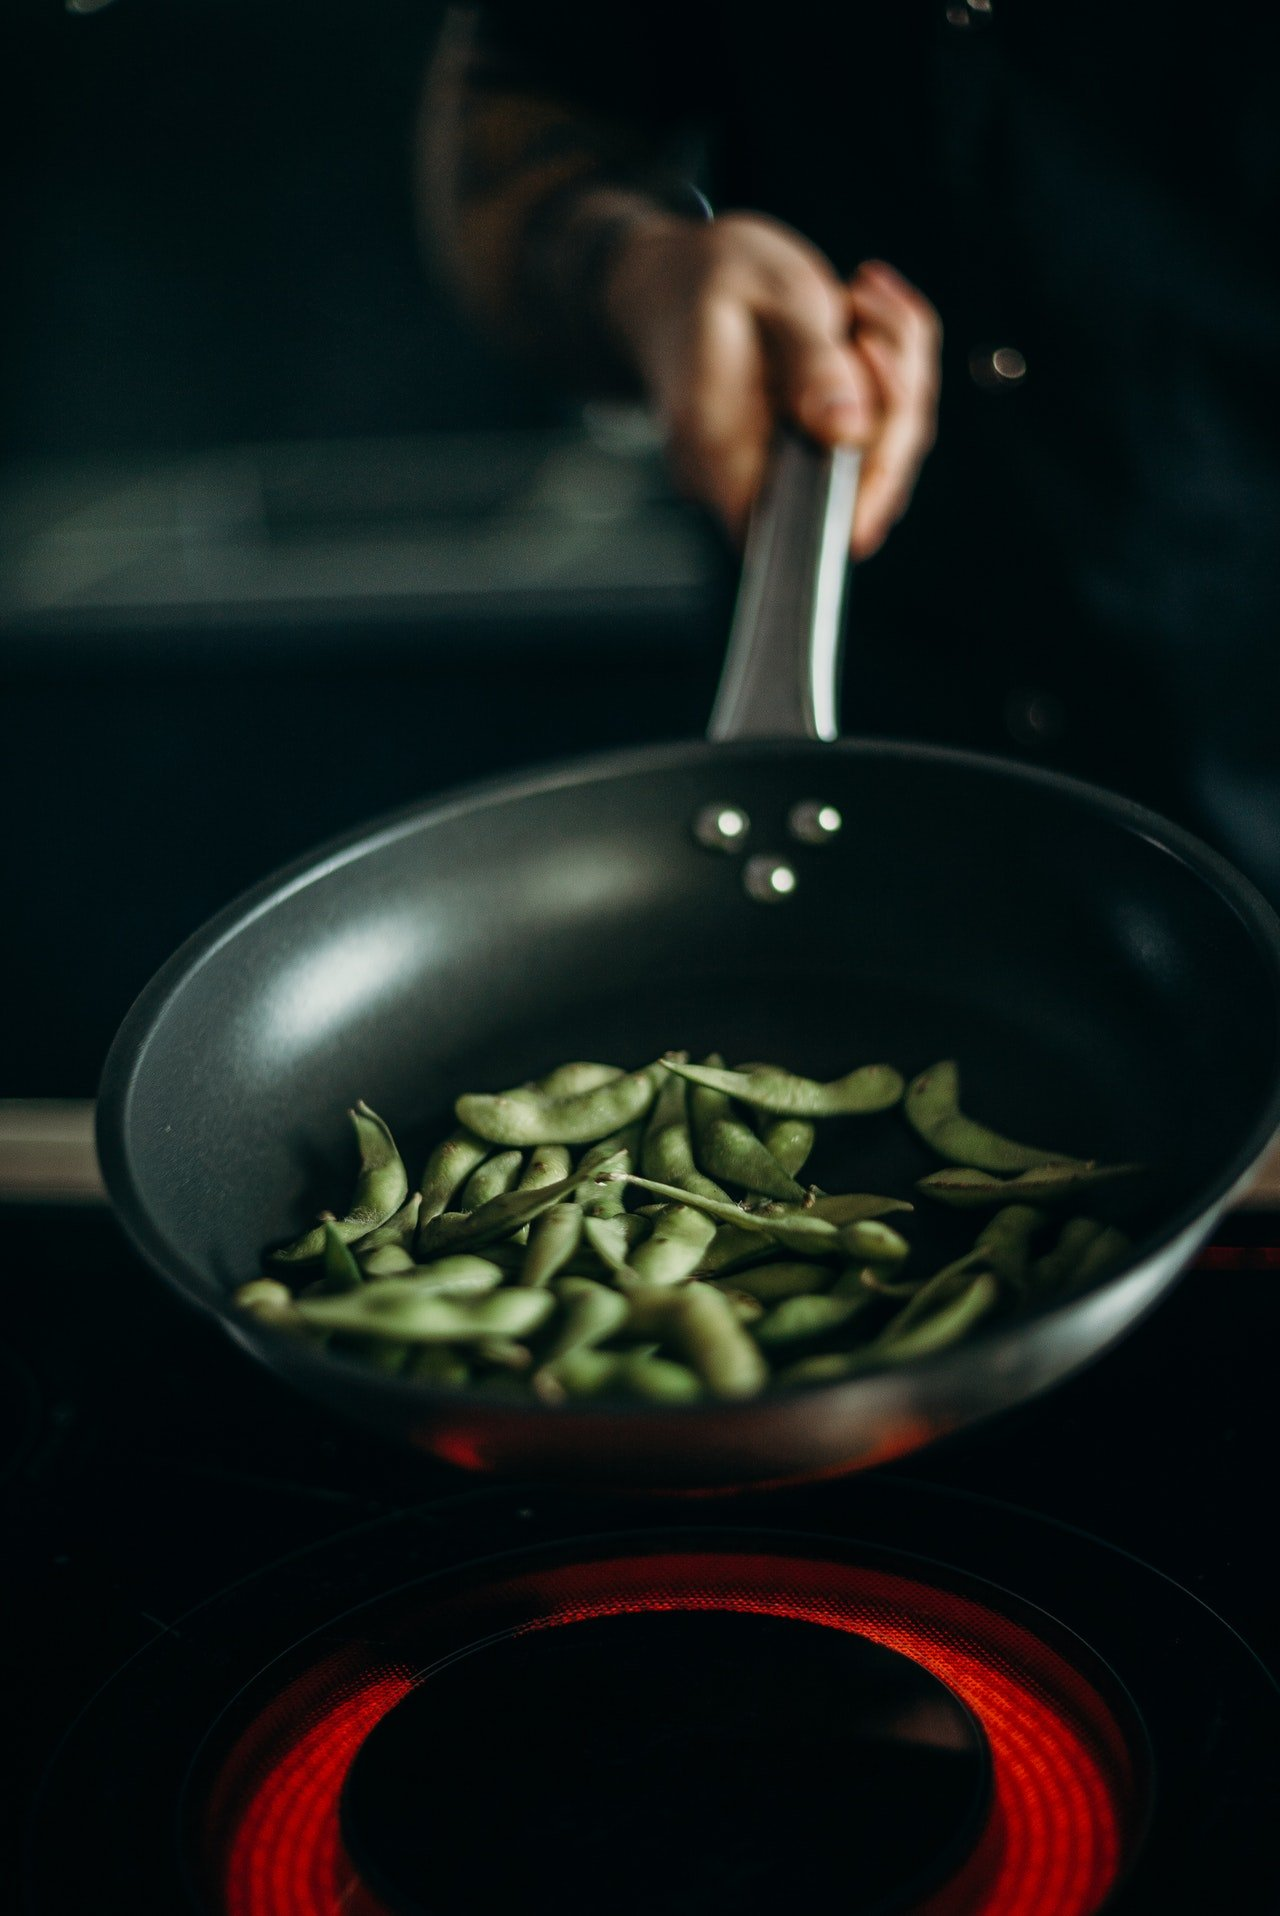 Person holding skillet with green beans | Source: Pexels